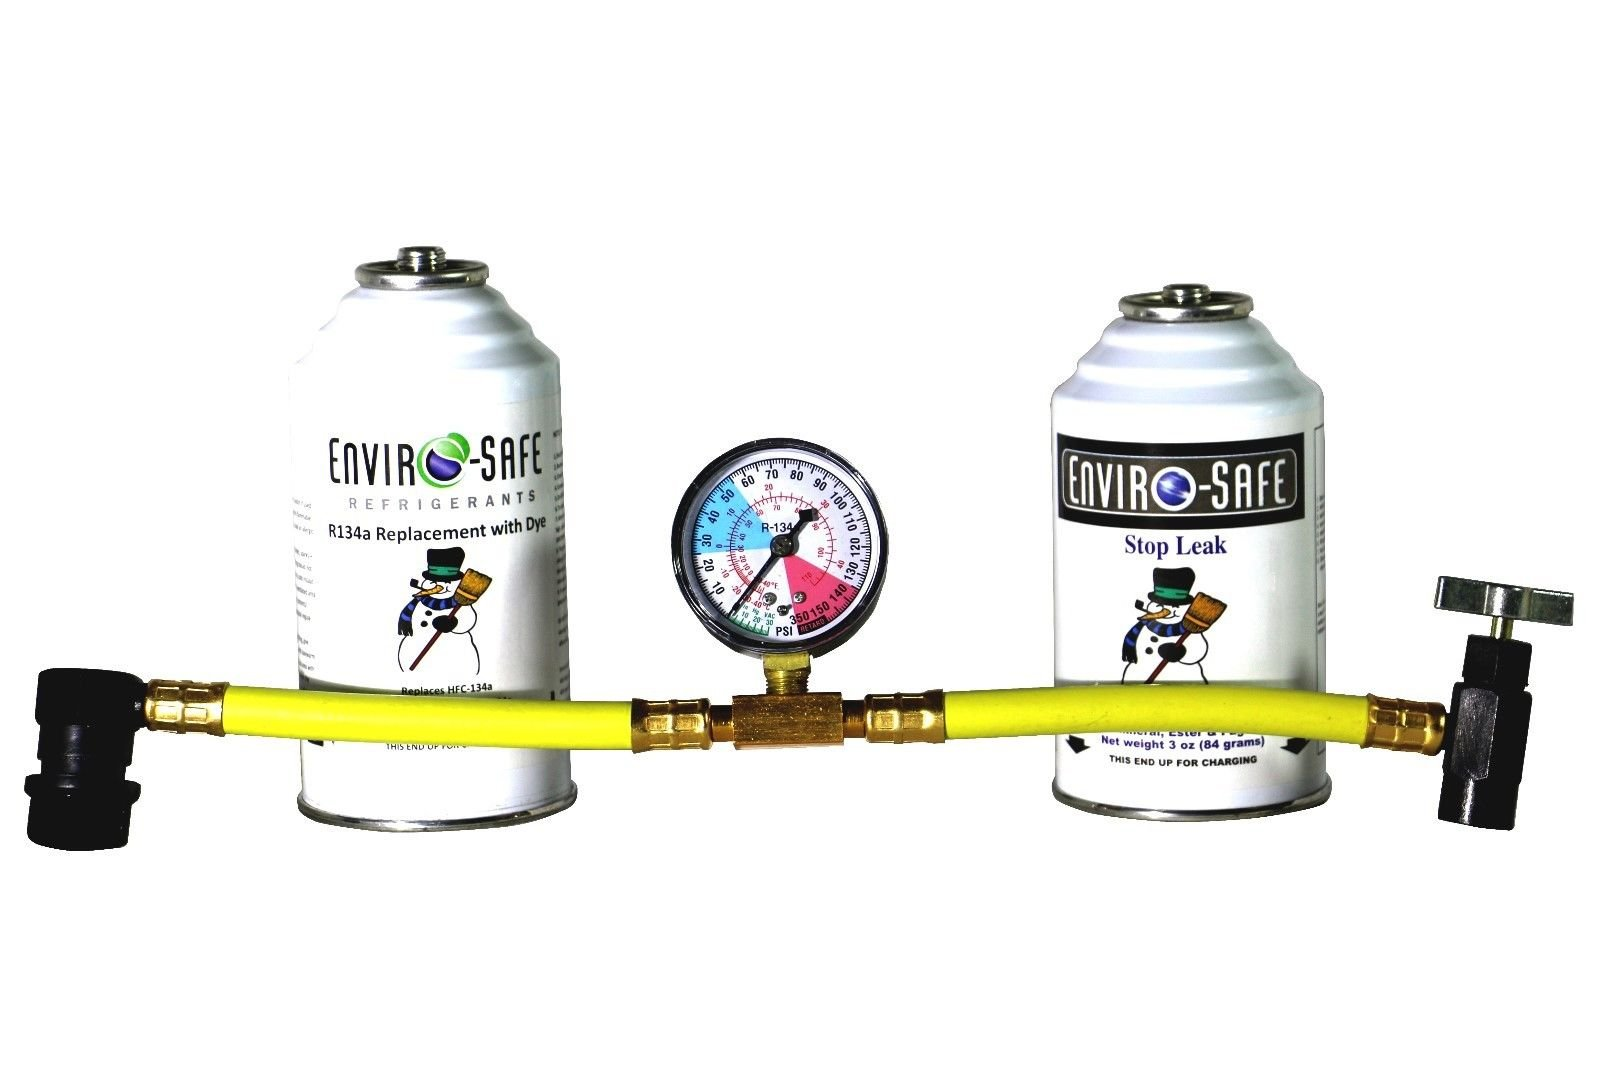 Enviro-Safe 1 Stop Leak and 1 R134a Replacement with Dye Kit with R134 Tap Gauge #RSG-3 by Enviro-Safe